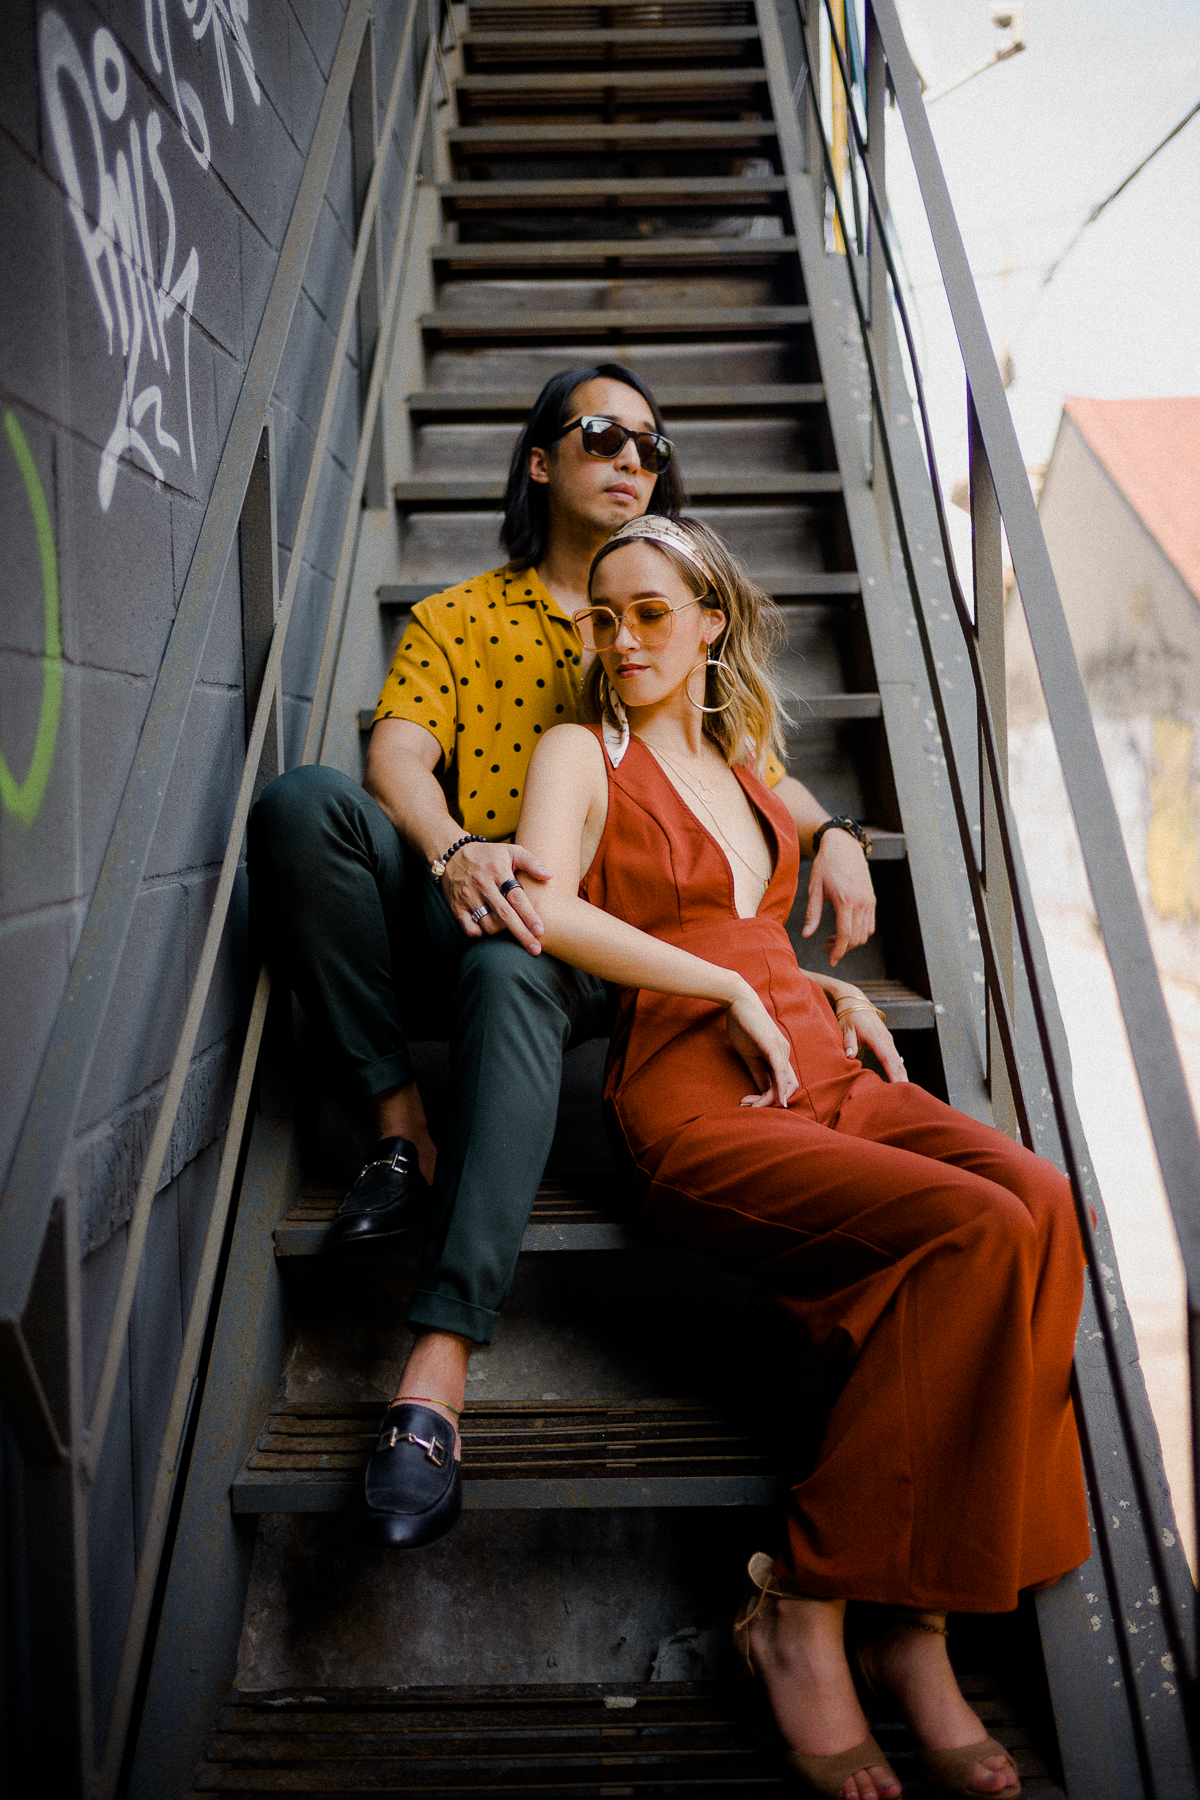 70s-inspired-vintage-wedding-engagement-photos 0009.jpg